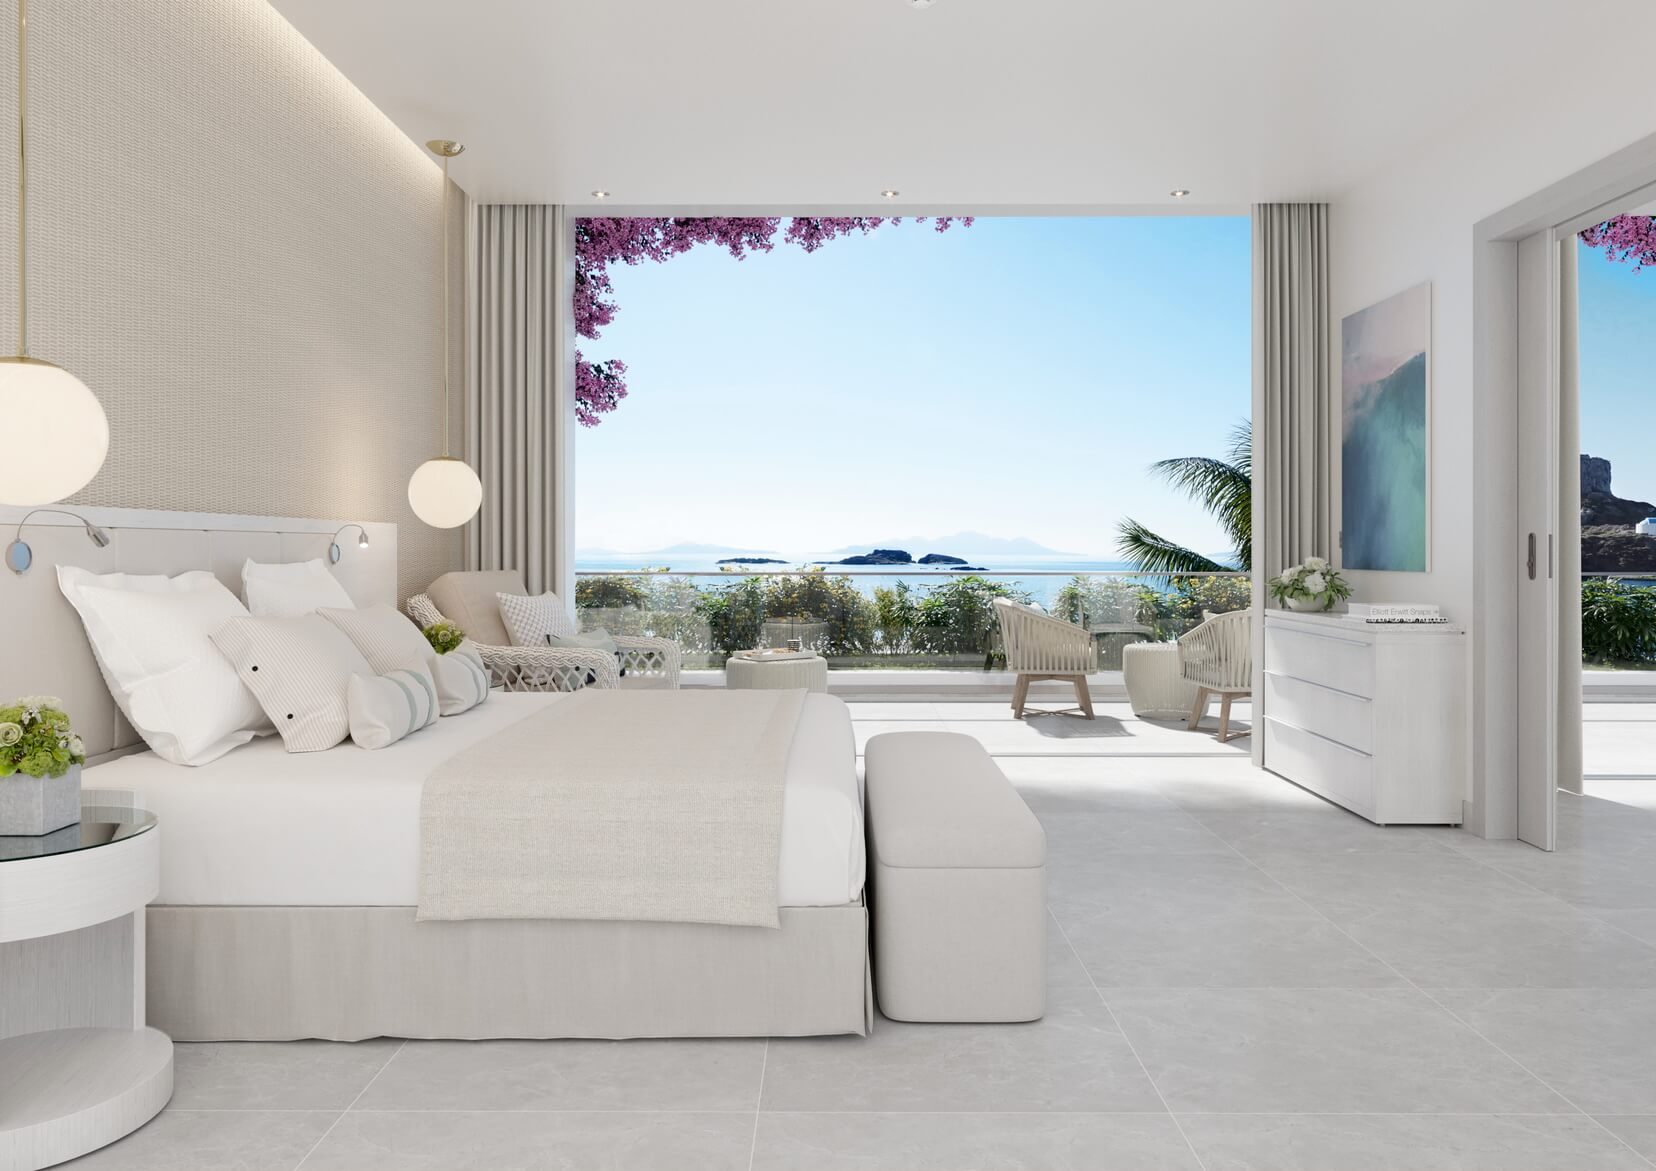 ikos-aria-_-deluxe-one-bedroom-bungalow-suite